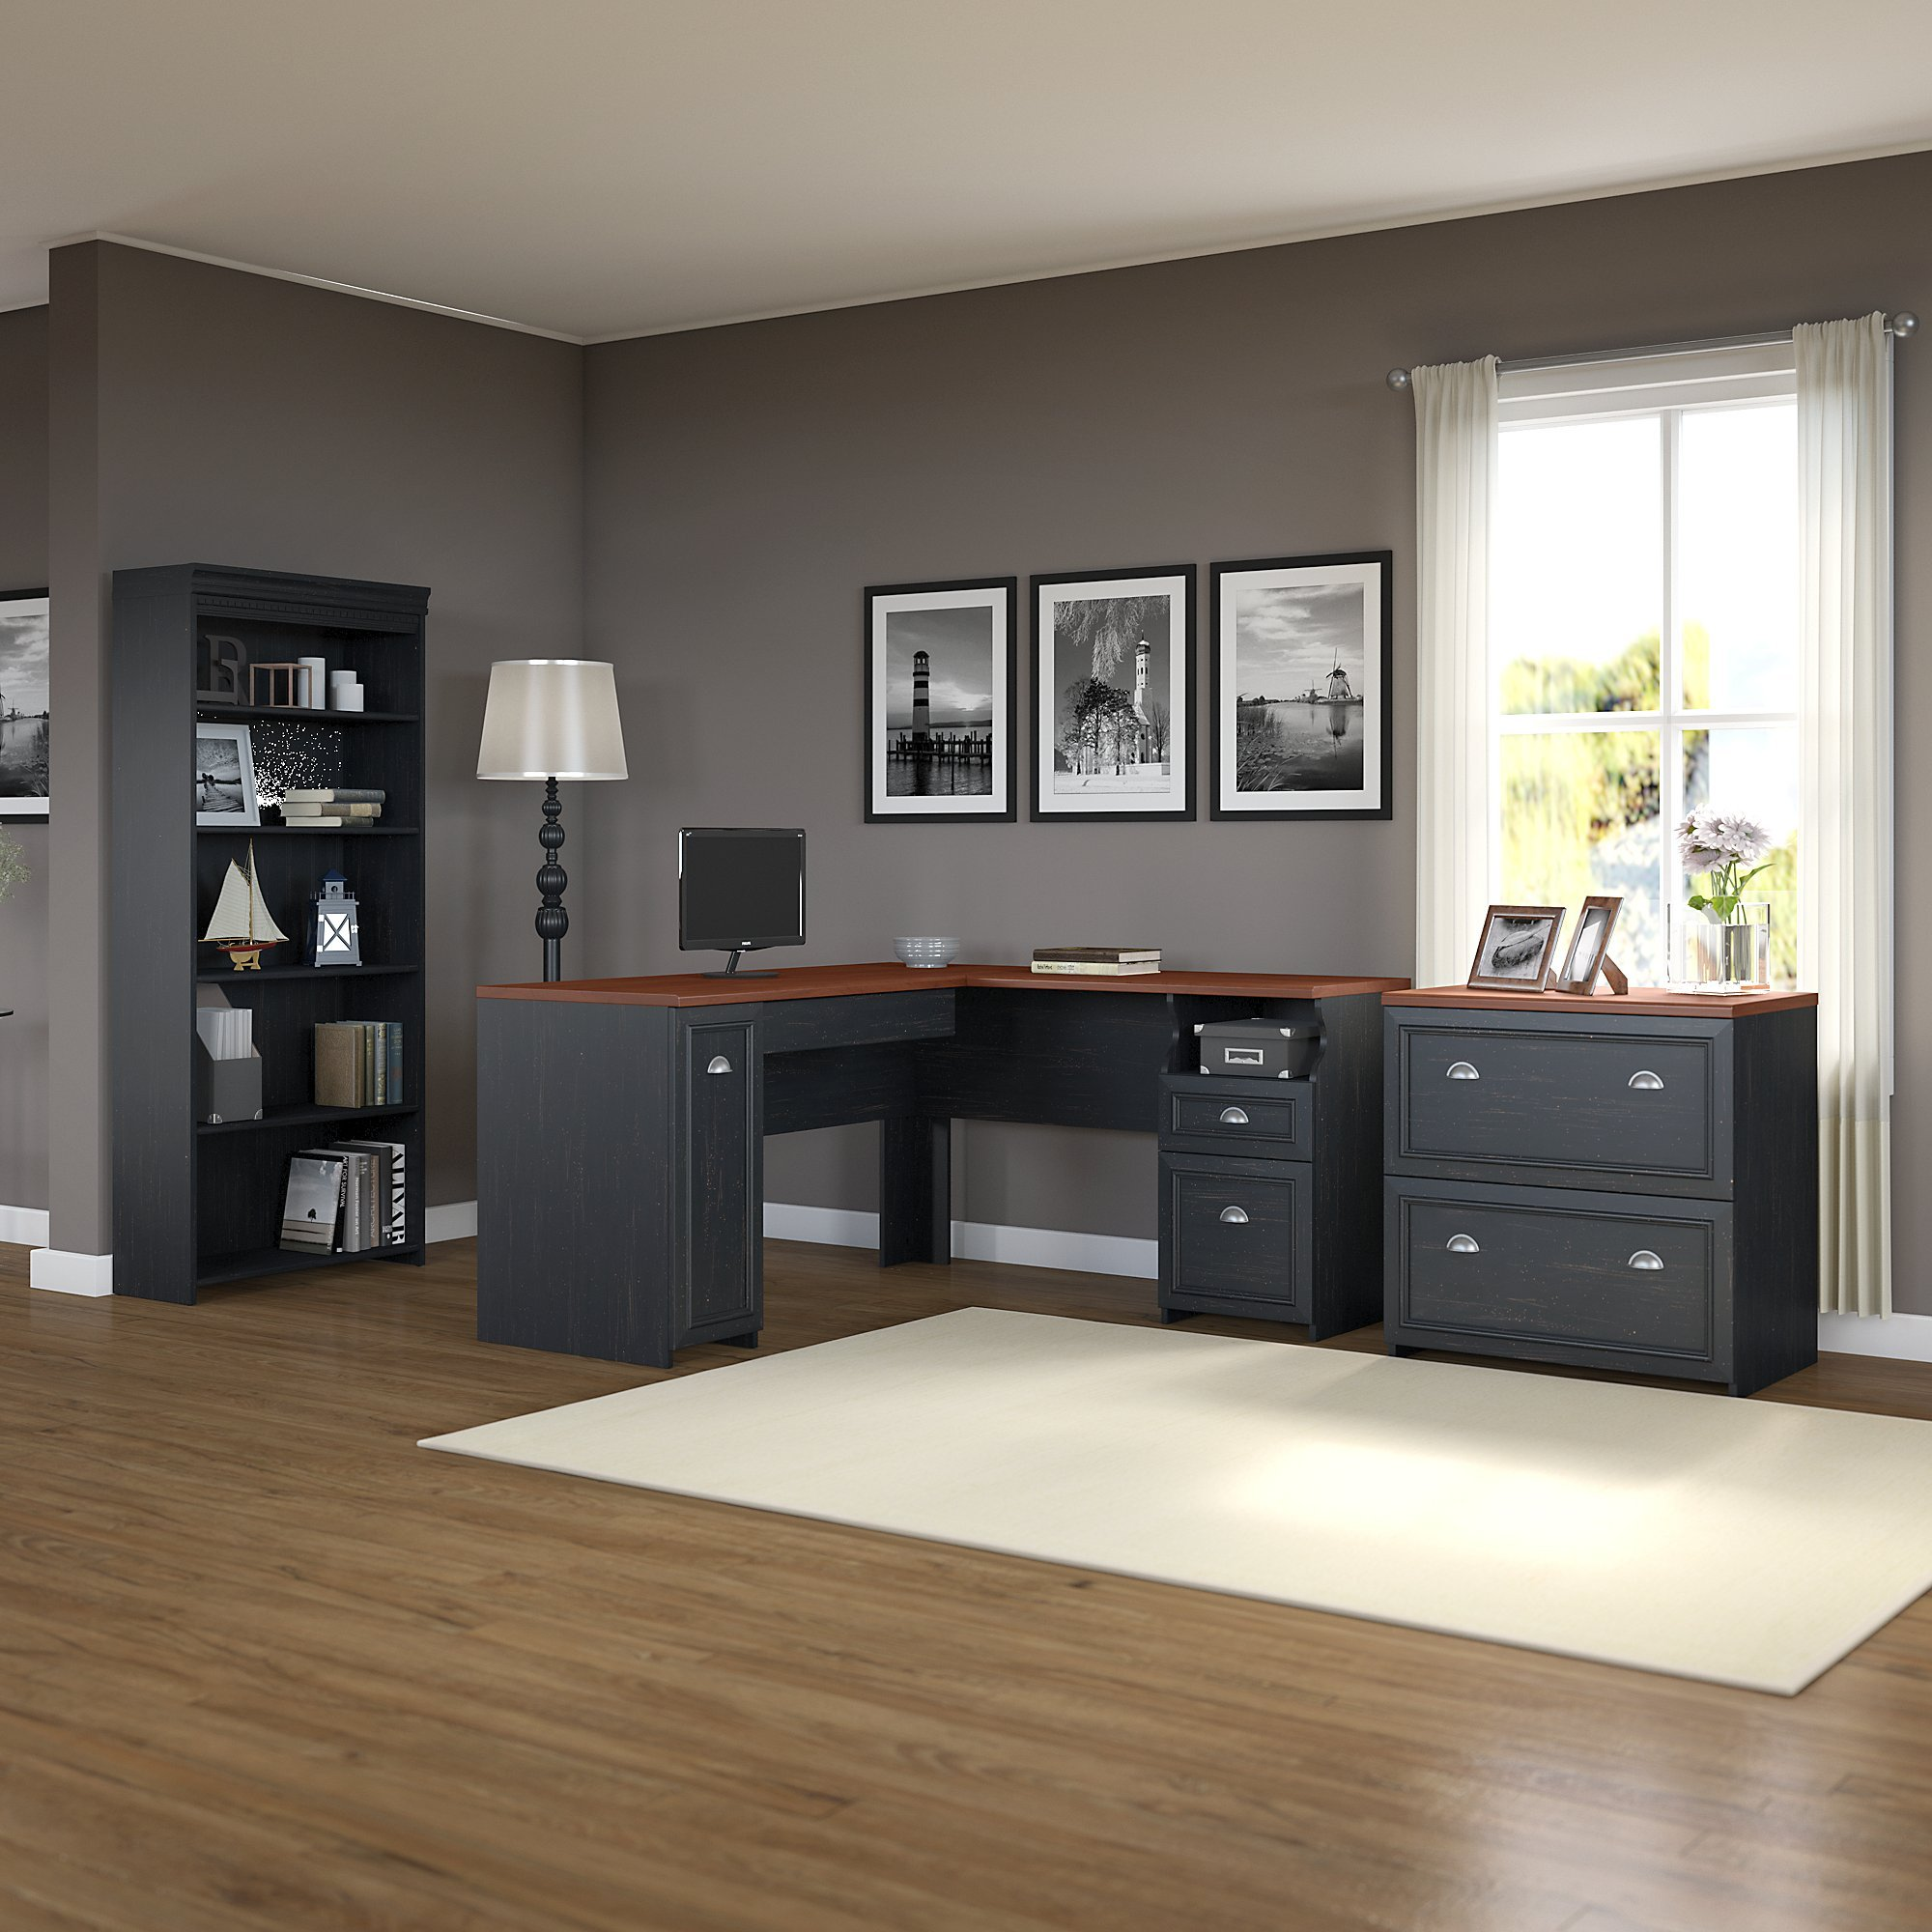 Fairview L Shaped Desk with Bookcase and Lateral File Cabinet